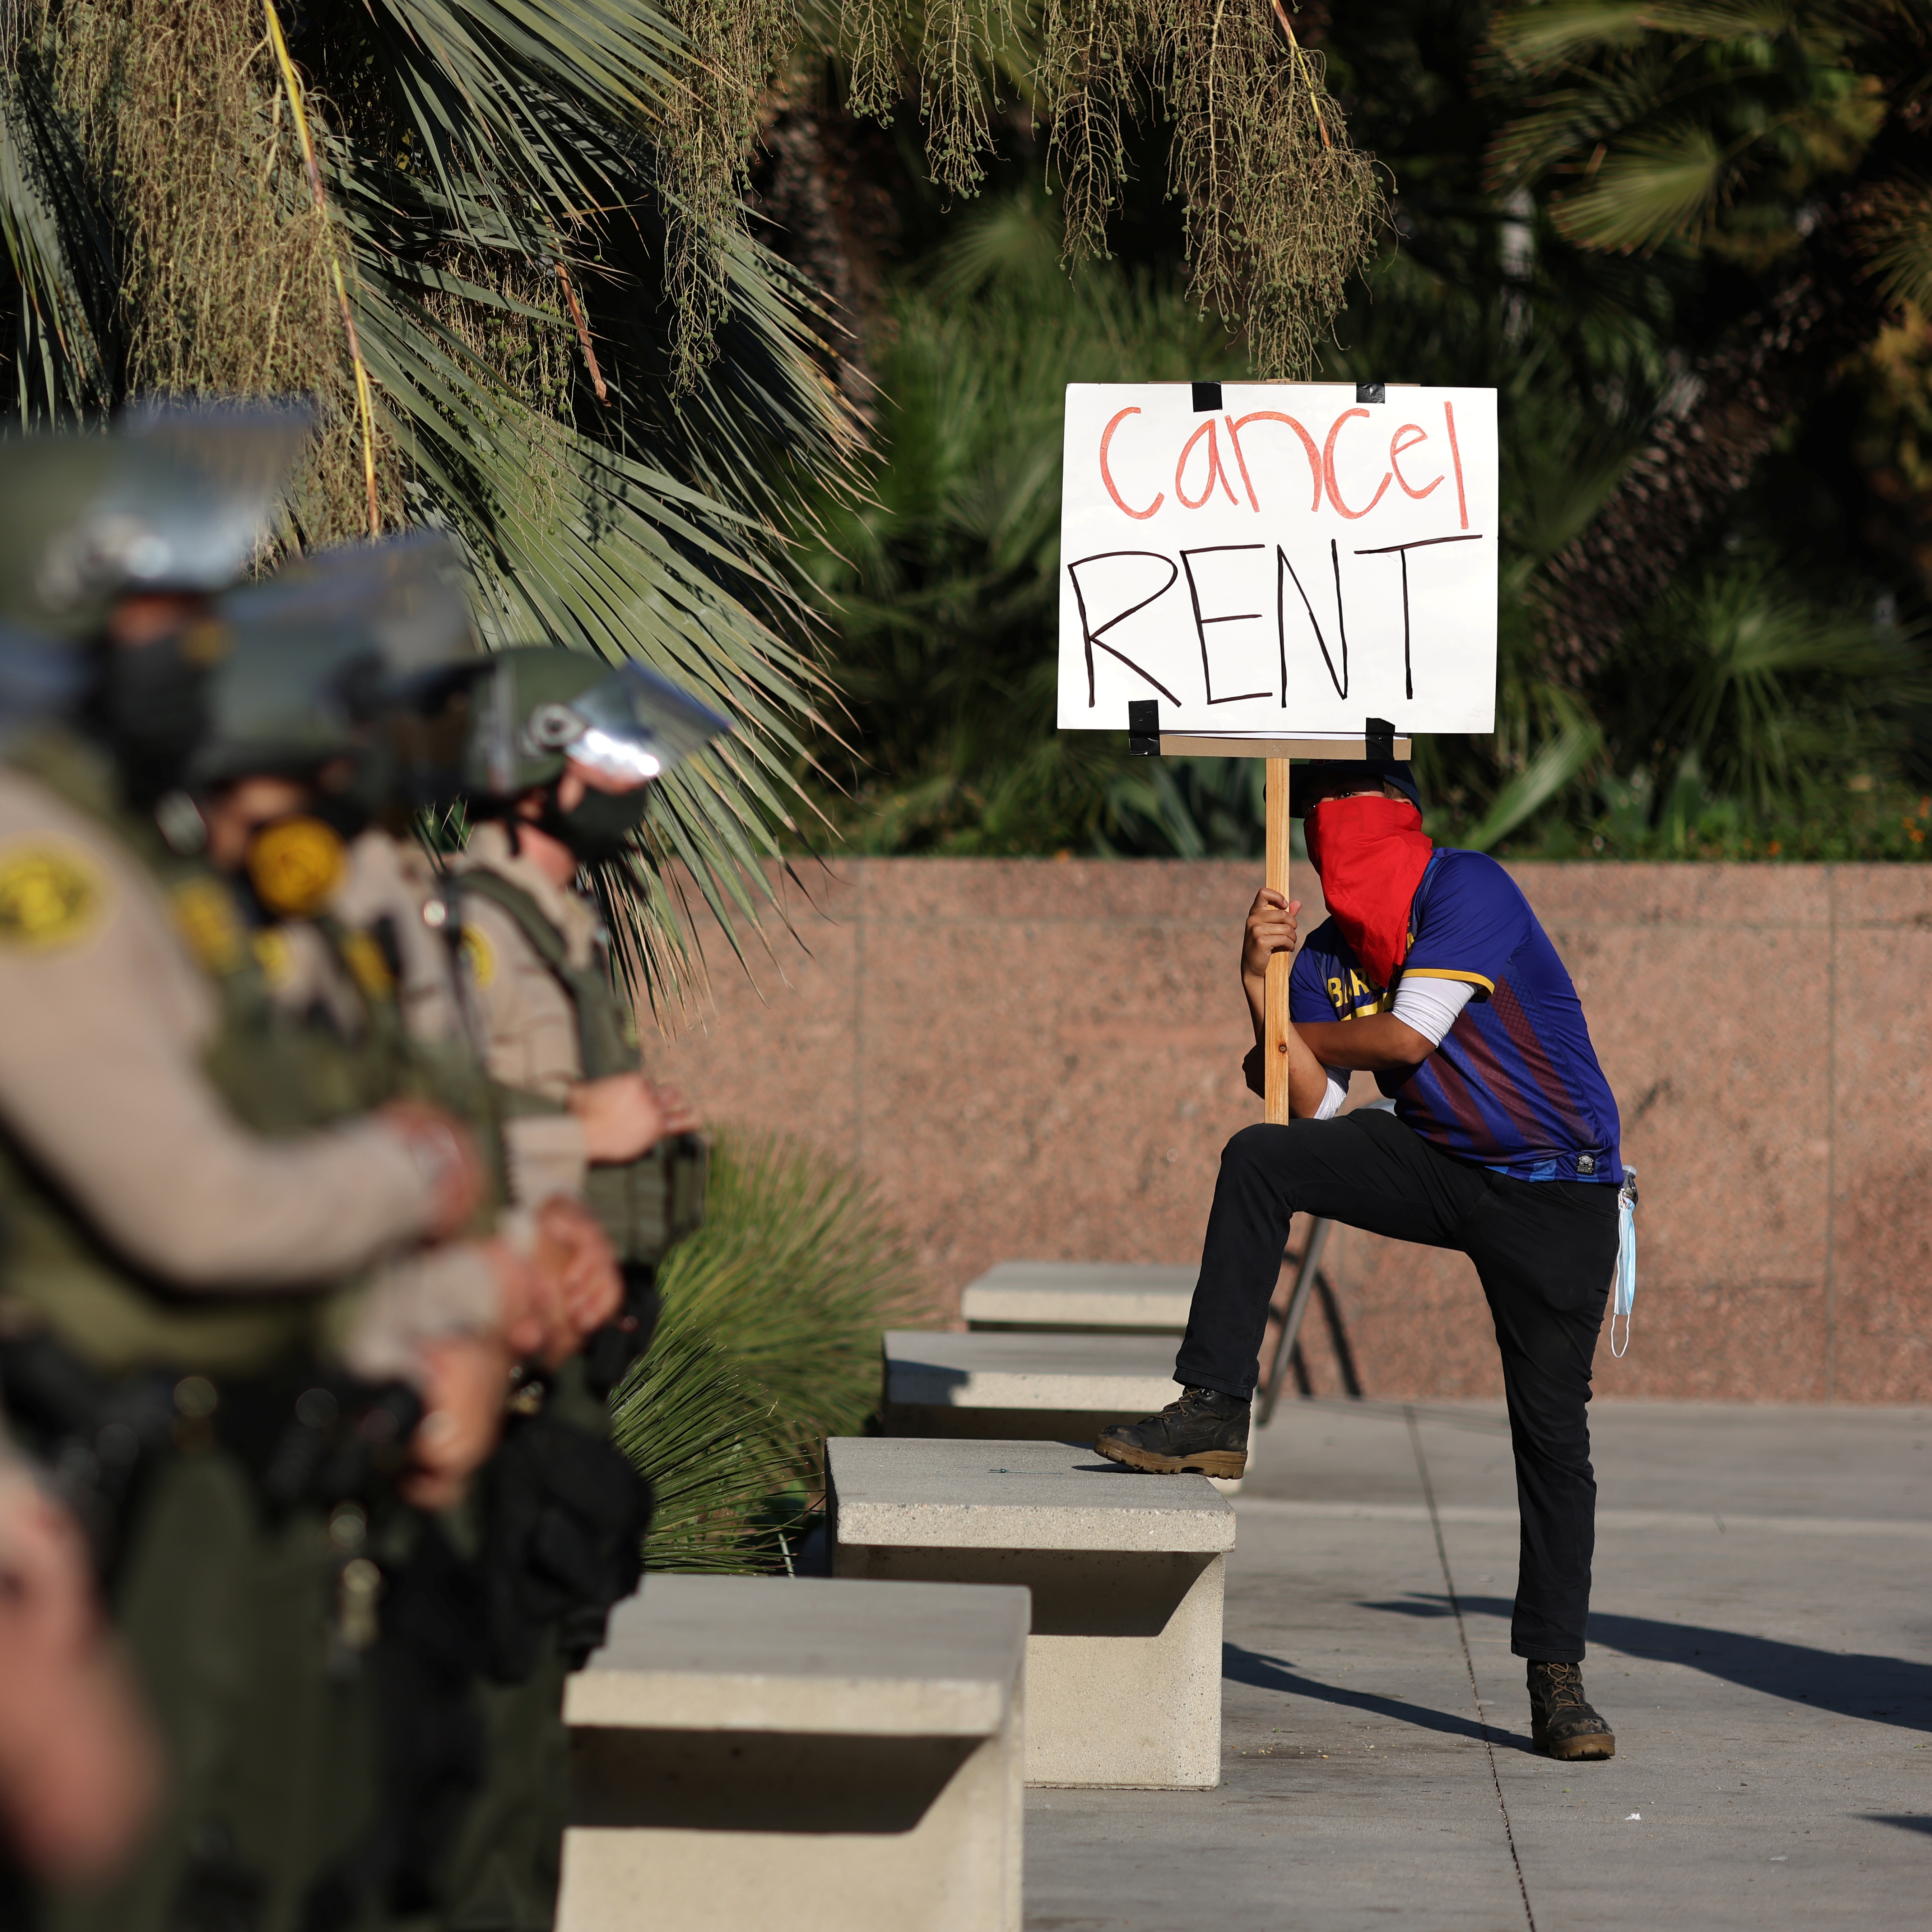 Tenants and housing rights activists protest for a halting of rent payments and mortgage debt as sheriff's deputies block the entrance to the courthouse in Los Angeles, California on October 1, 2020.